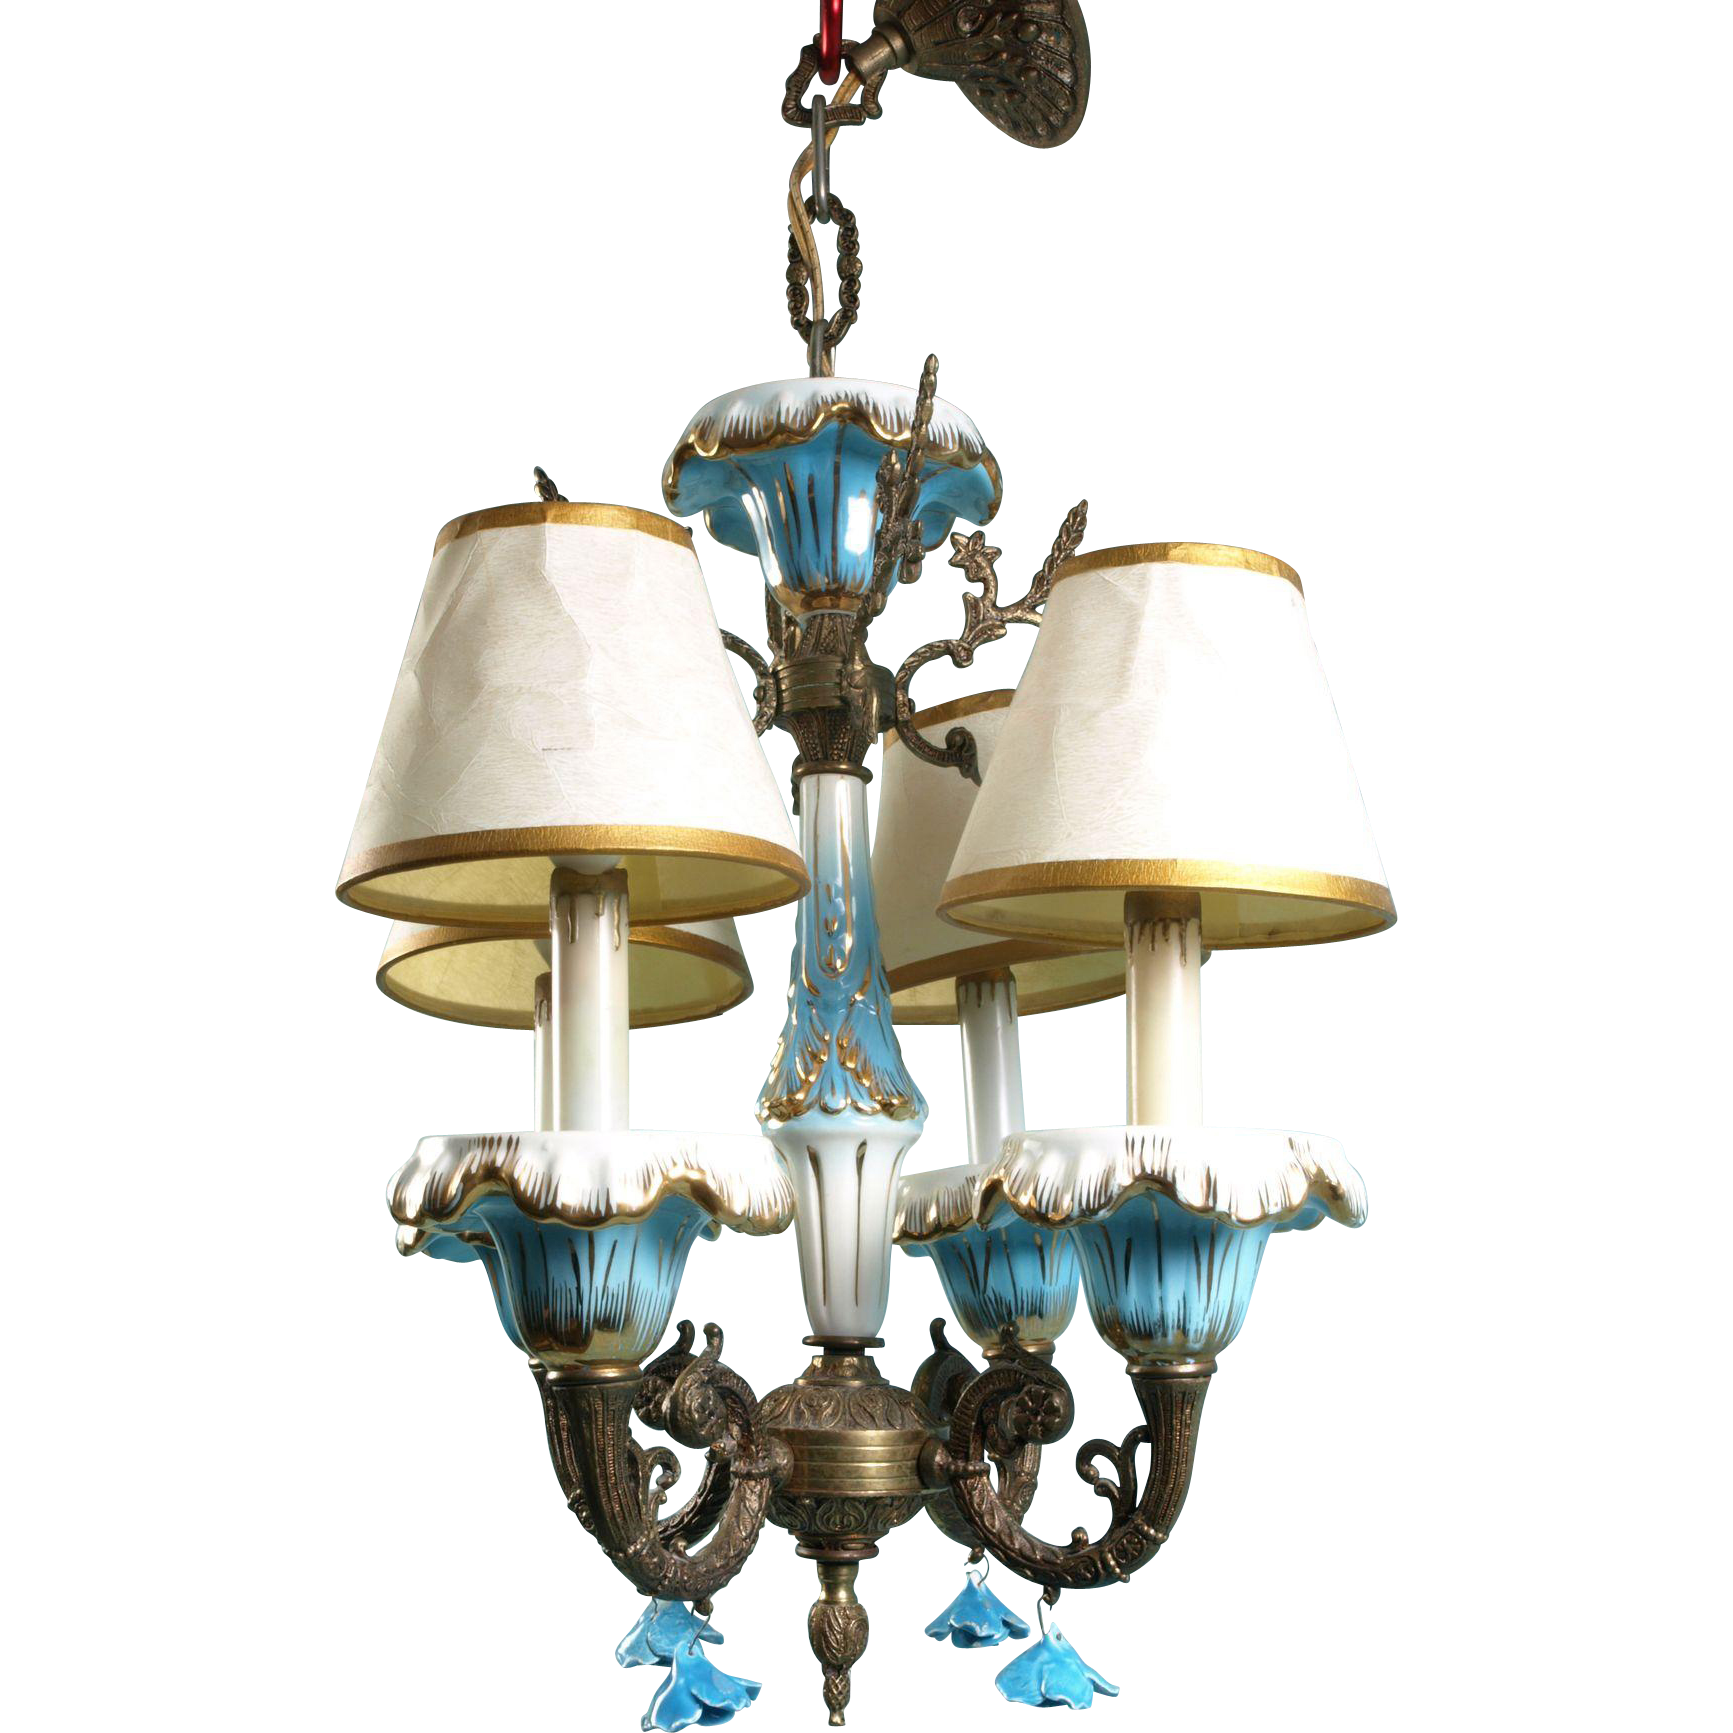 Antique vintage porcelain chandelier italian style blue flower antique vintage porcelain chandelier italian style blue flower light fixture arubaitofo Gallery